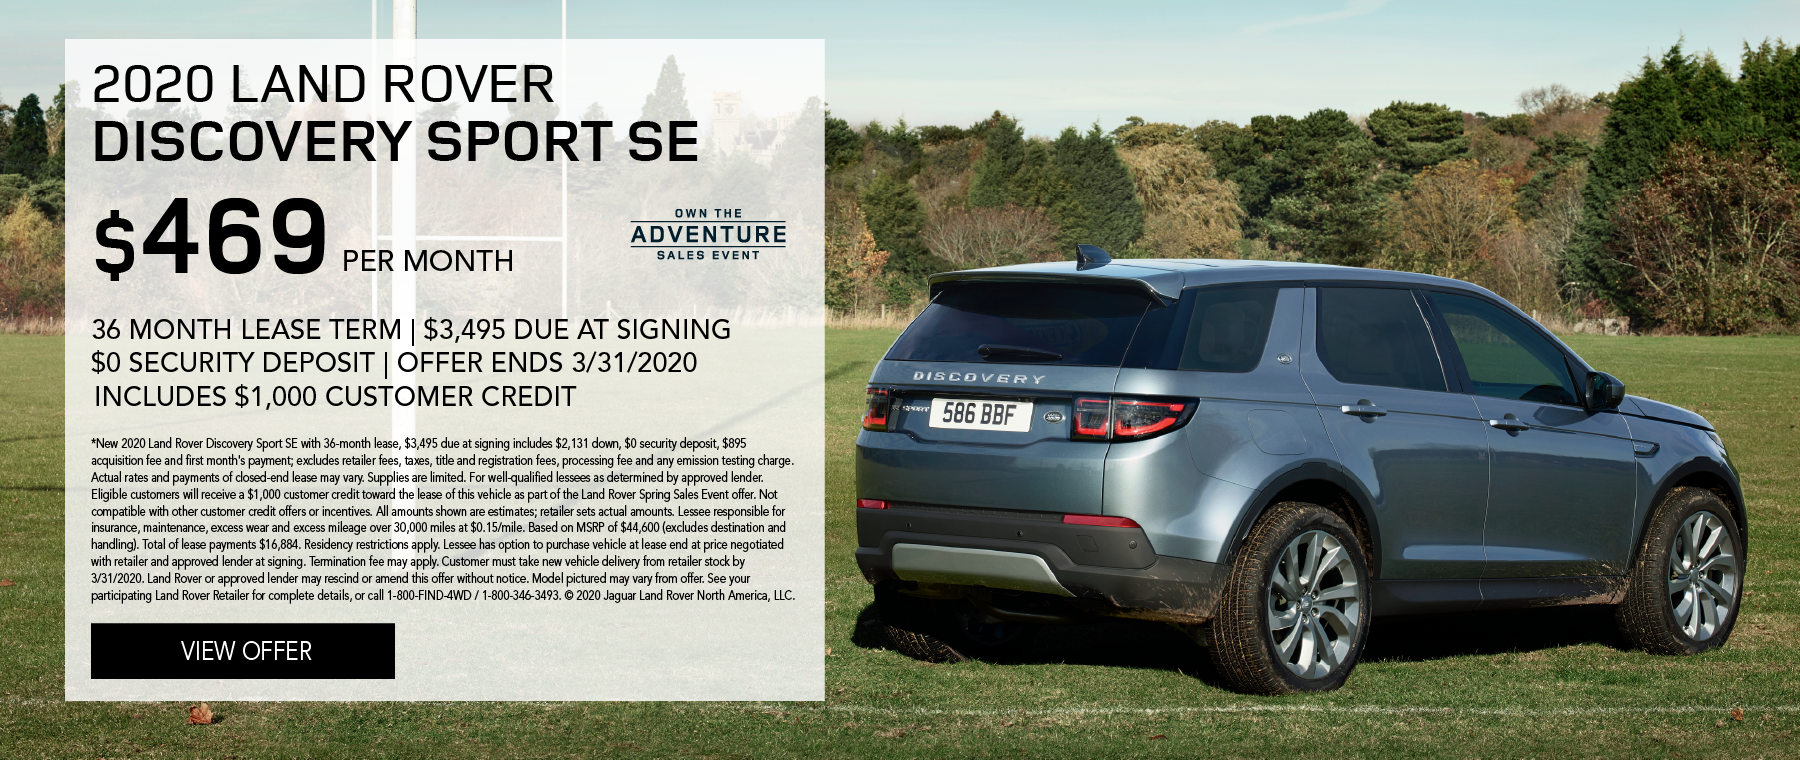 2020 LAND ROVER DISCOVERY SPORT SE PARKED IN GRASSY FOOTBALL FIELD WITH TREES IN BACKGROUND. $469 PER MONTH. 36 MONTH LEASE TERM. $3,495 CASH DUE AT SIGNING. INCLUDES $1,000 CUSTOMER CREDIT. $0 SECURITY DEPOSIT. 10,000 MILES PER YEAR. OFFER ENDS 3/31/2020. OWN THE ADVENTURE SALES EVENT.